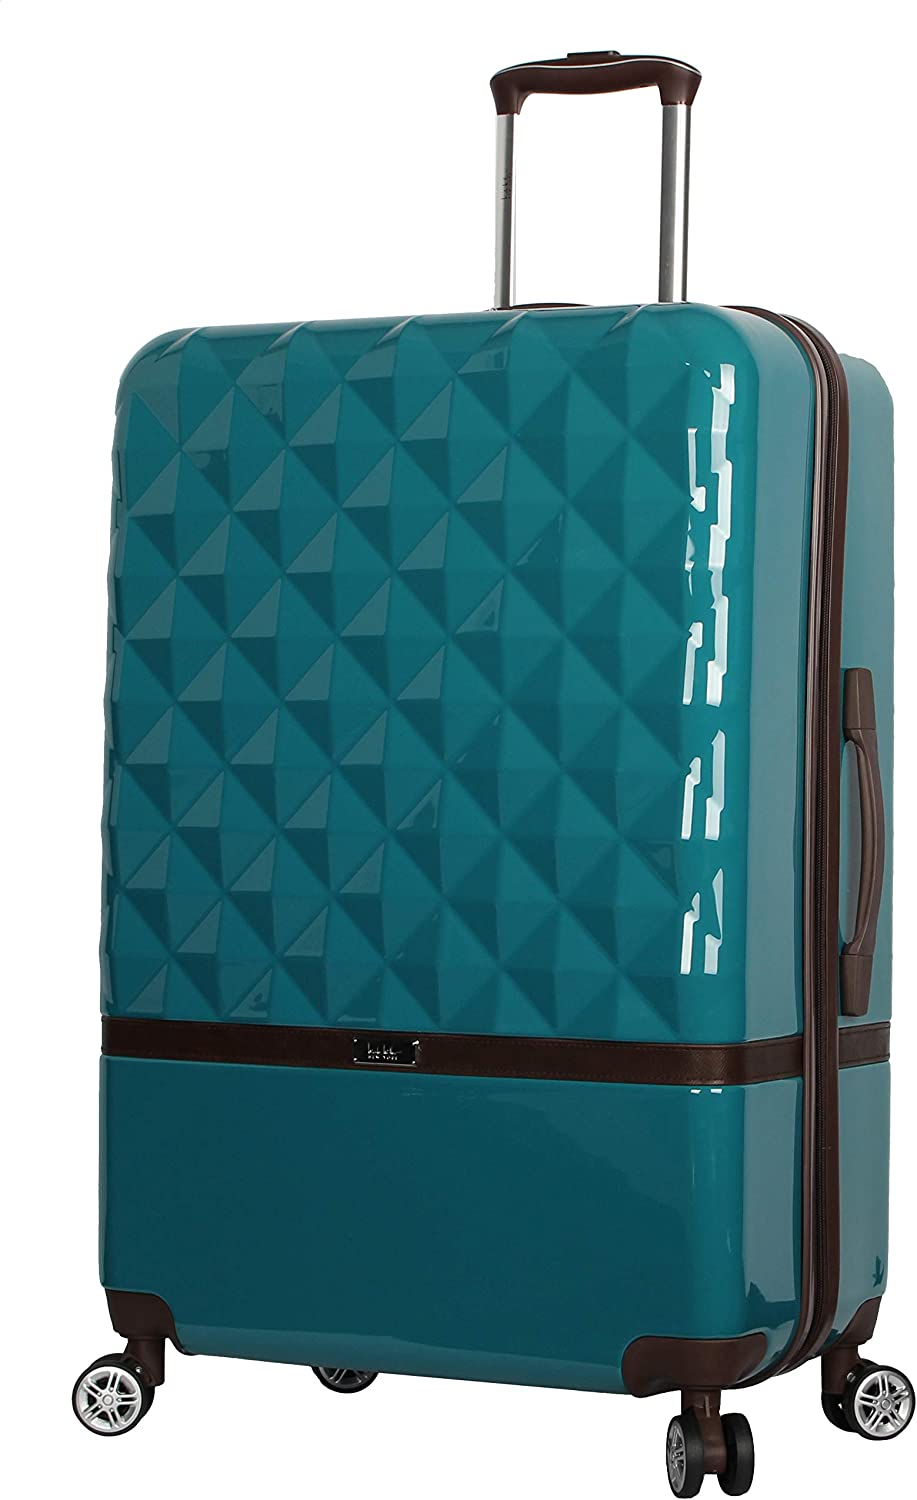 Nicole Miller New York Madison Collection Hardside 24 Luggage Spinner